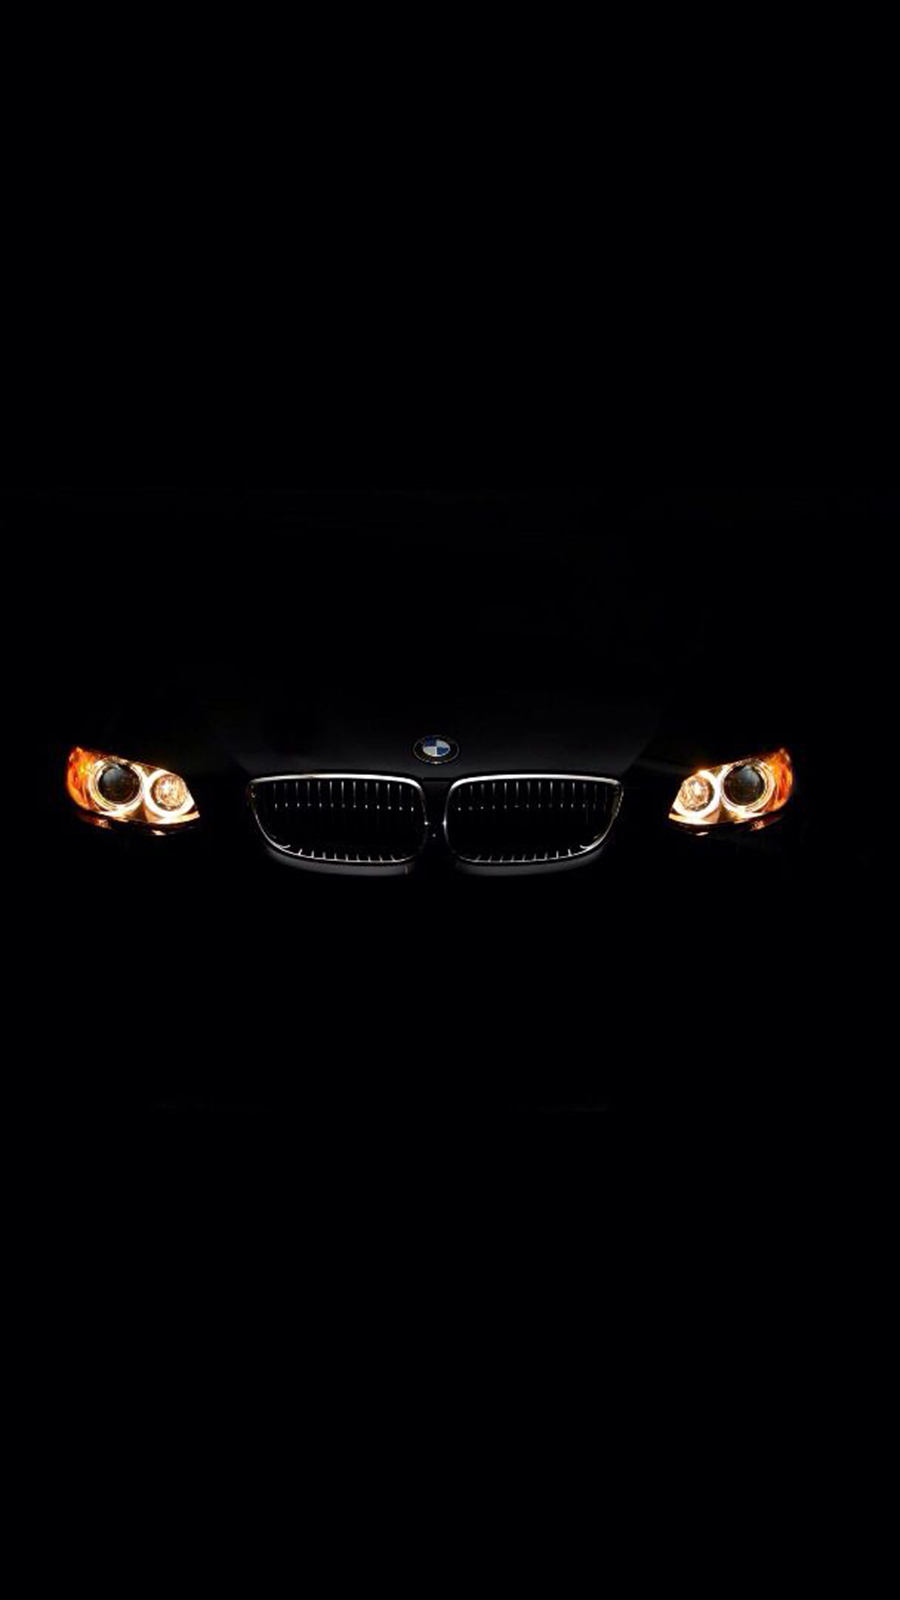 Best Bmw HD wallpapers download – Free Bmw HD Wallpapers (26)